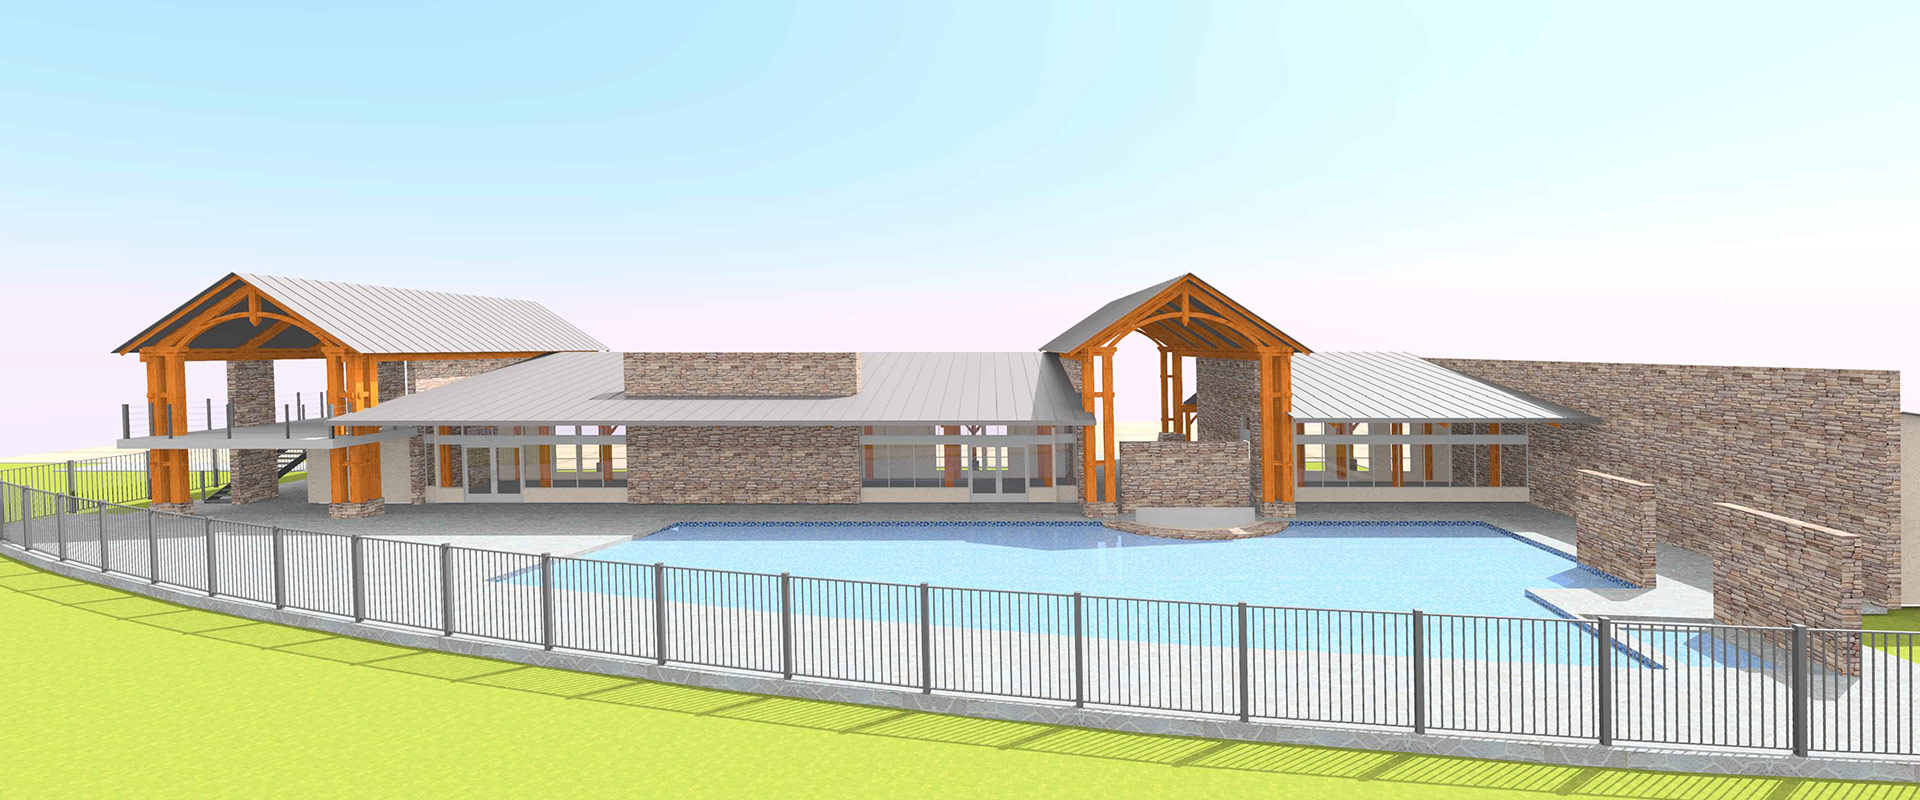 New Clubhouse at LakeShore RV Resort